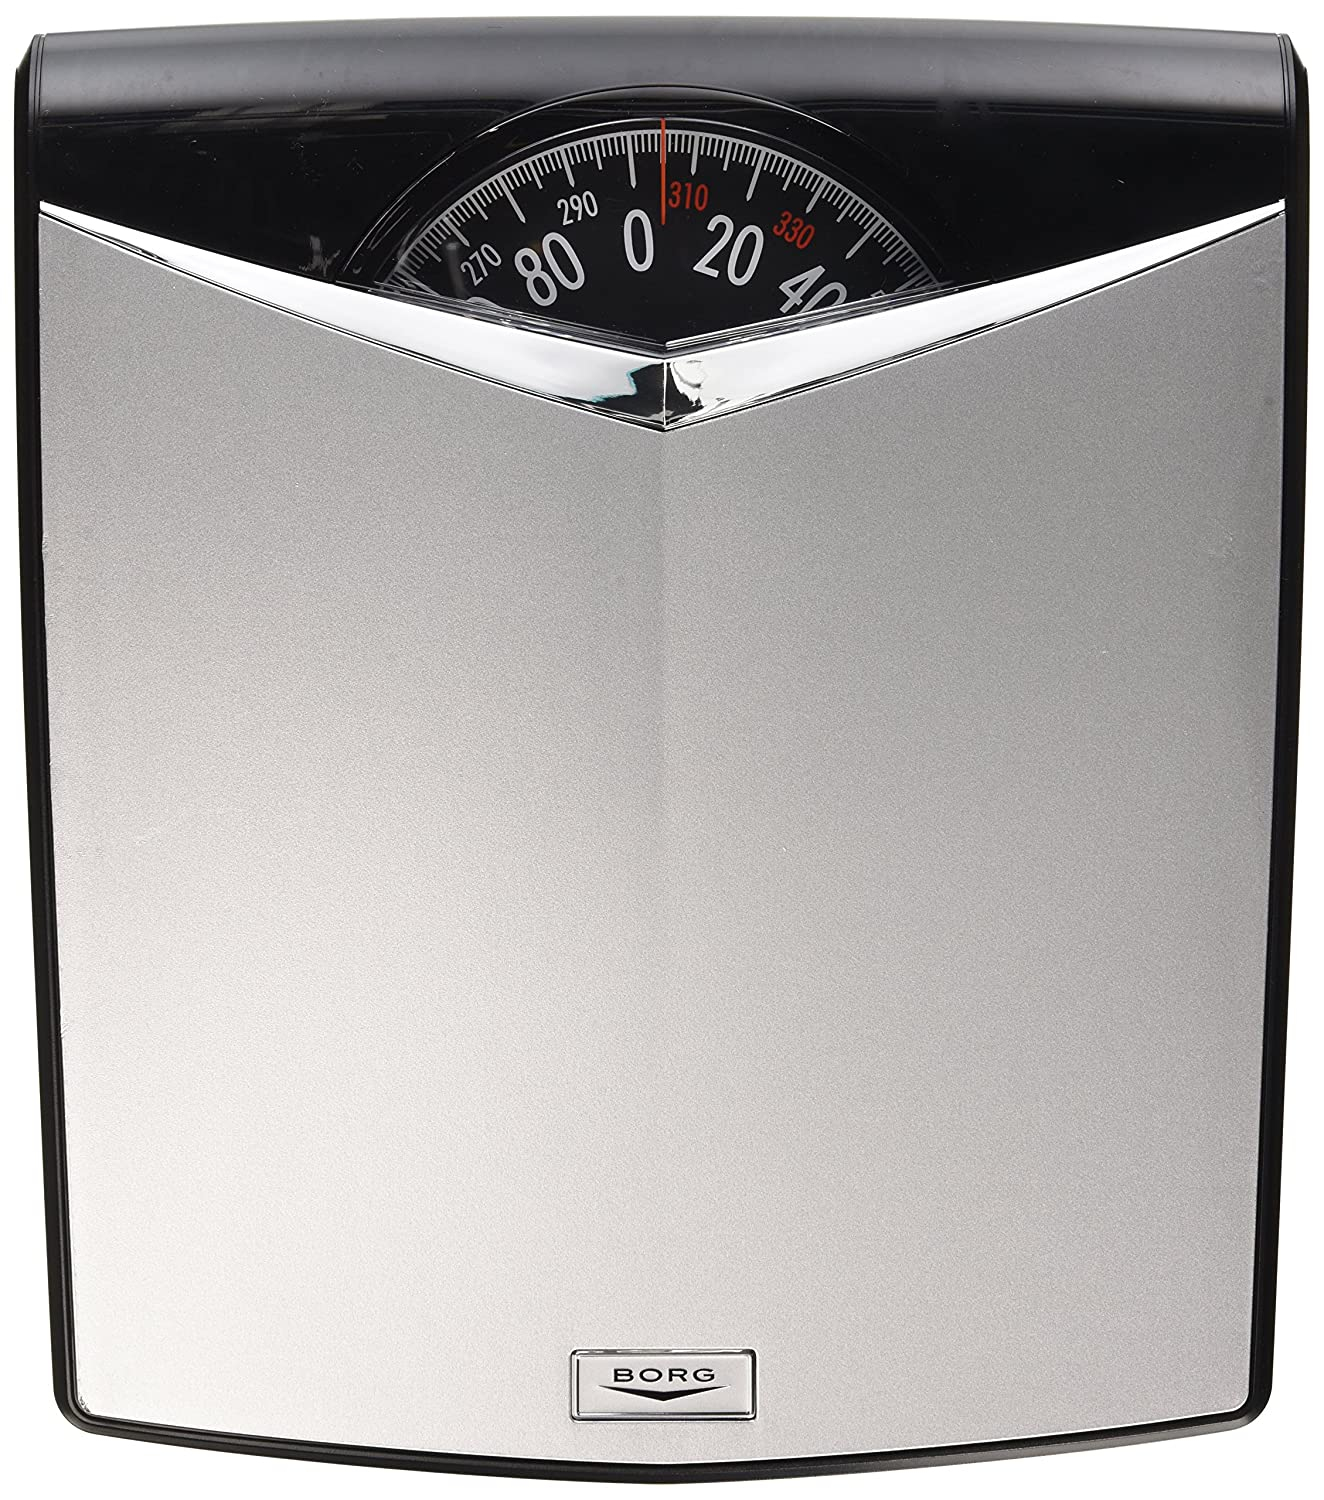 Borg bathroom scale - Amazon Com Borg High Accuracy Modern Dial Scale Silver Health Personal Care